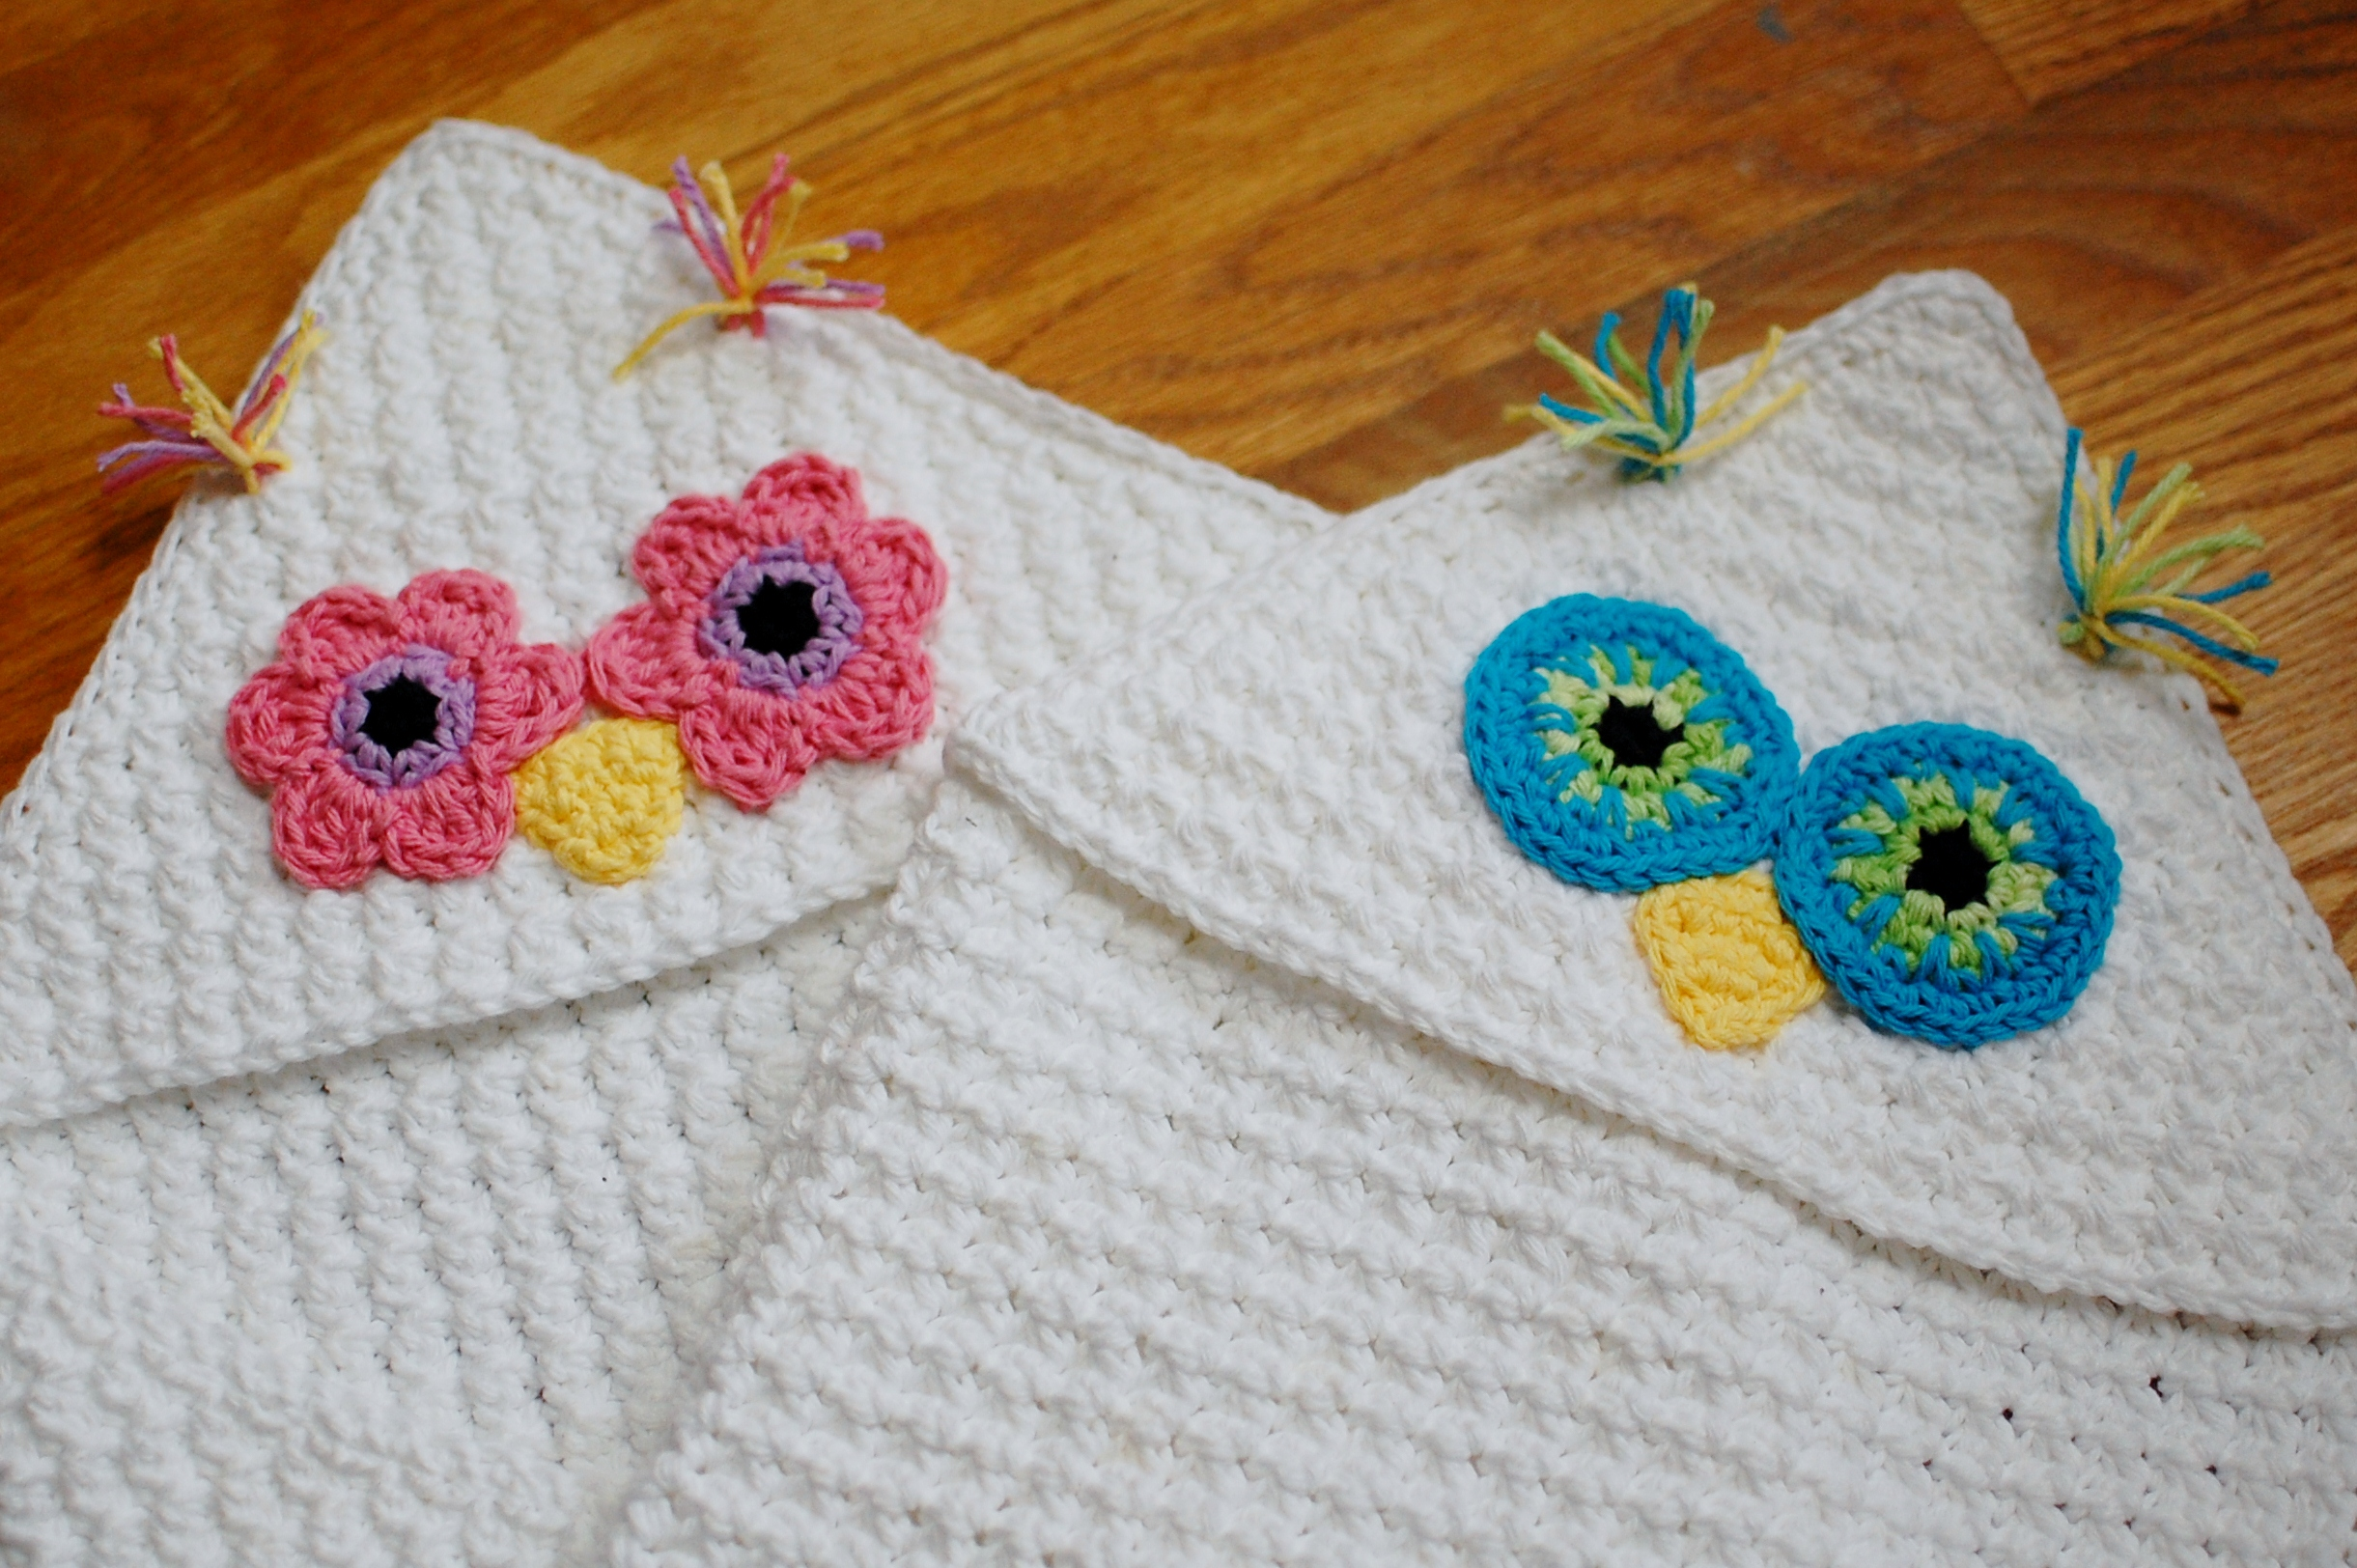 Crochet Owl Blanket : Related Pictures free crochet owl blanket pattern 427 x 480 15 kb jpeg ...